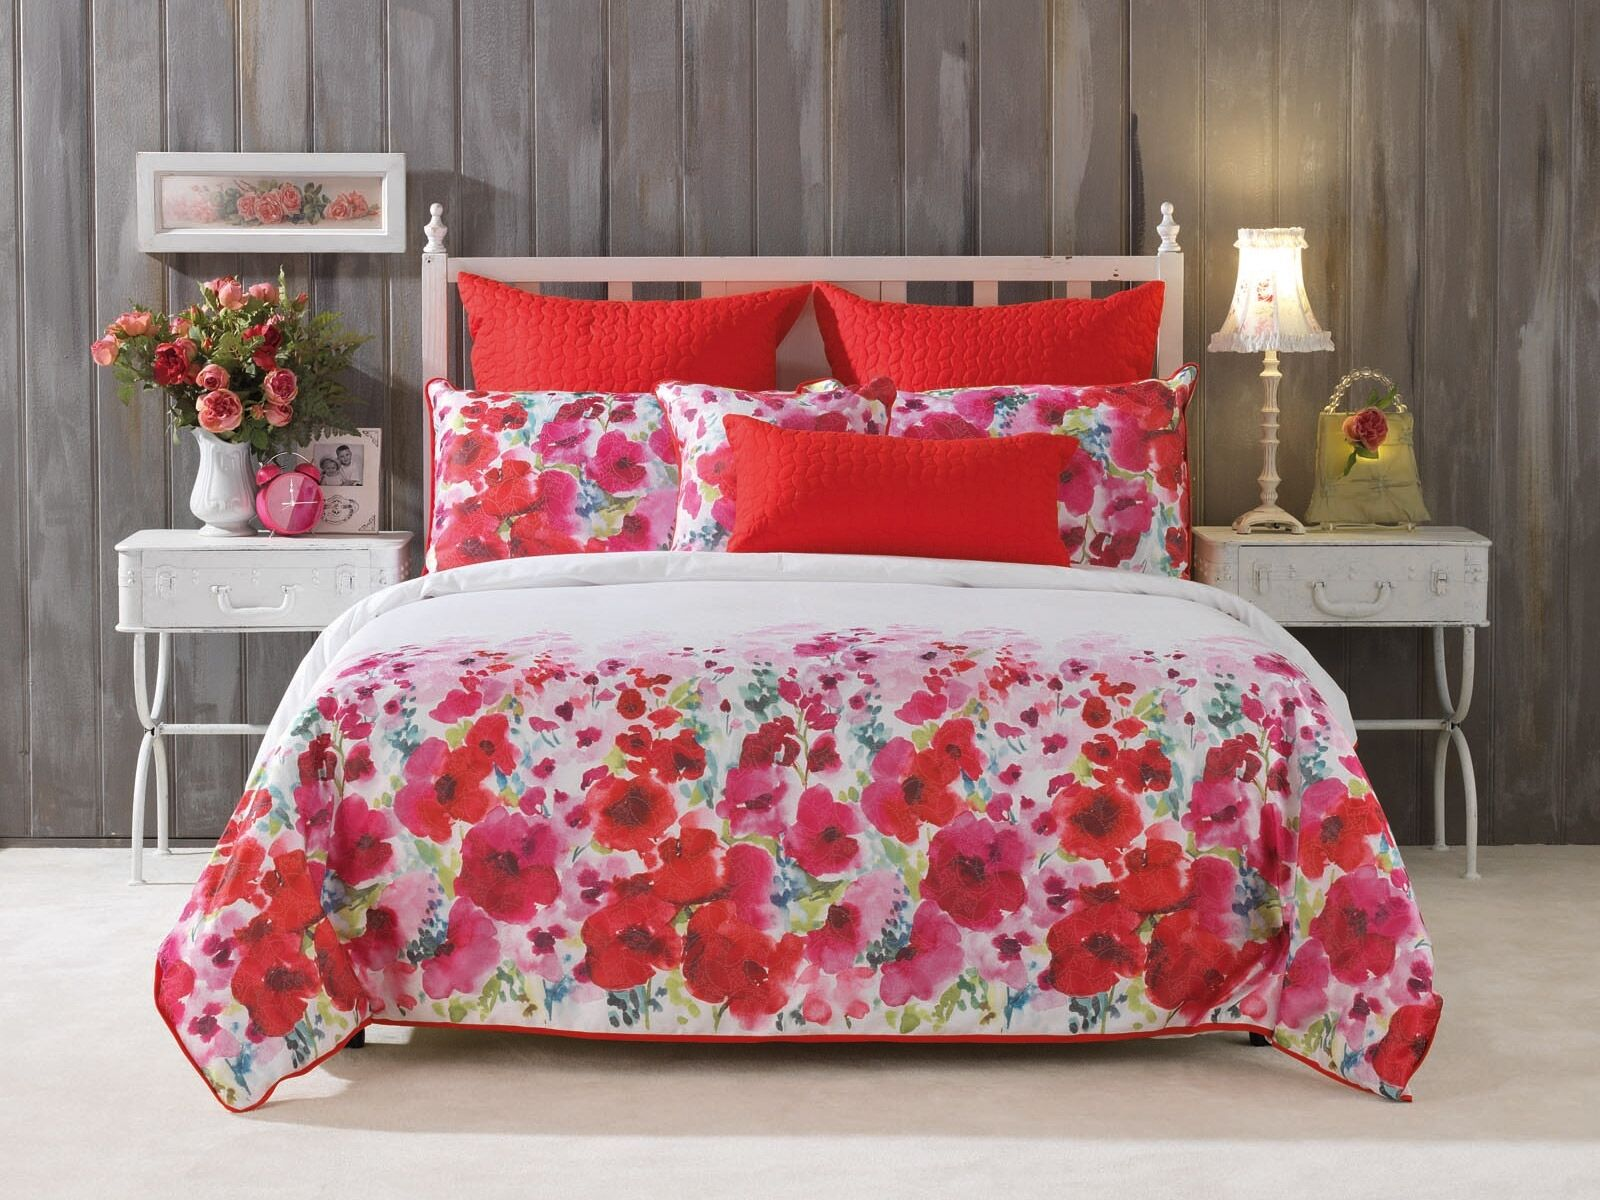 Bianca Makayla rosso Doona Duvet Quilt Cover Set Super King & Double Dimensione